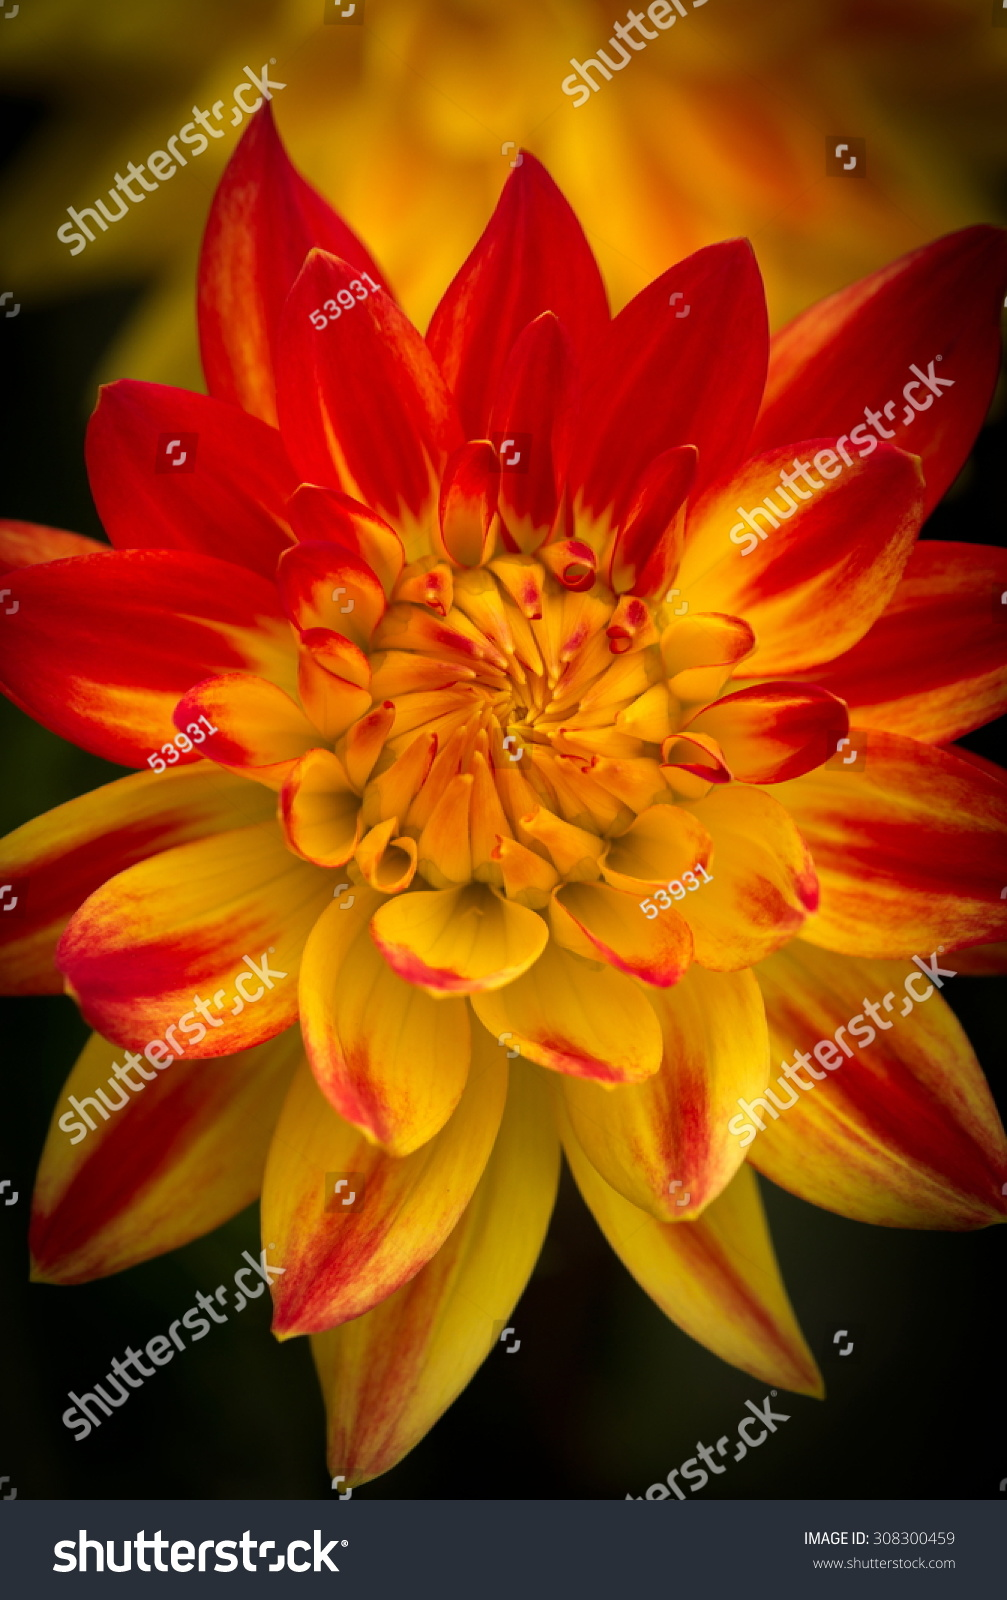 Closeup Of A Beautiful Dahlia Flower In Yellow And Red With Dark